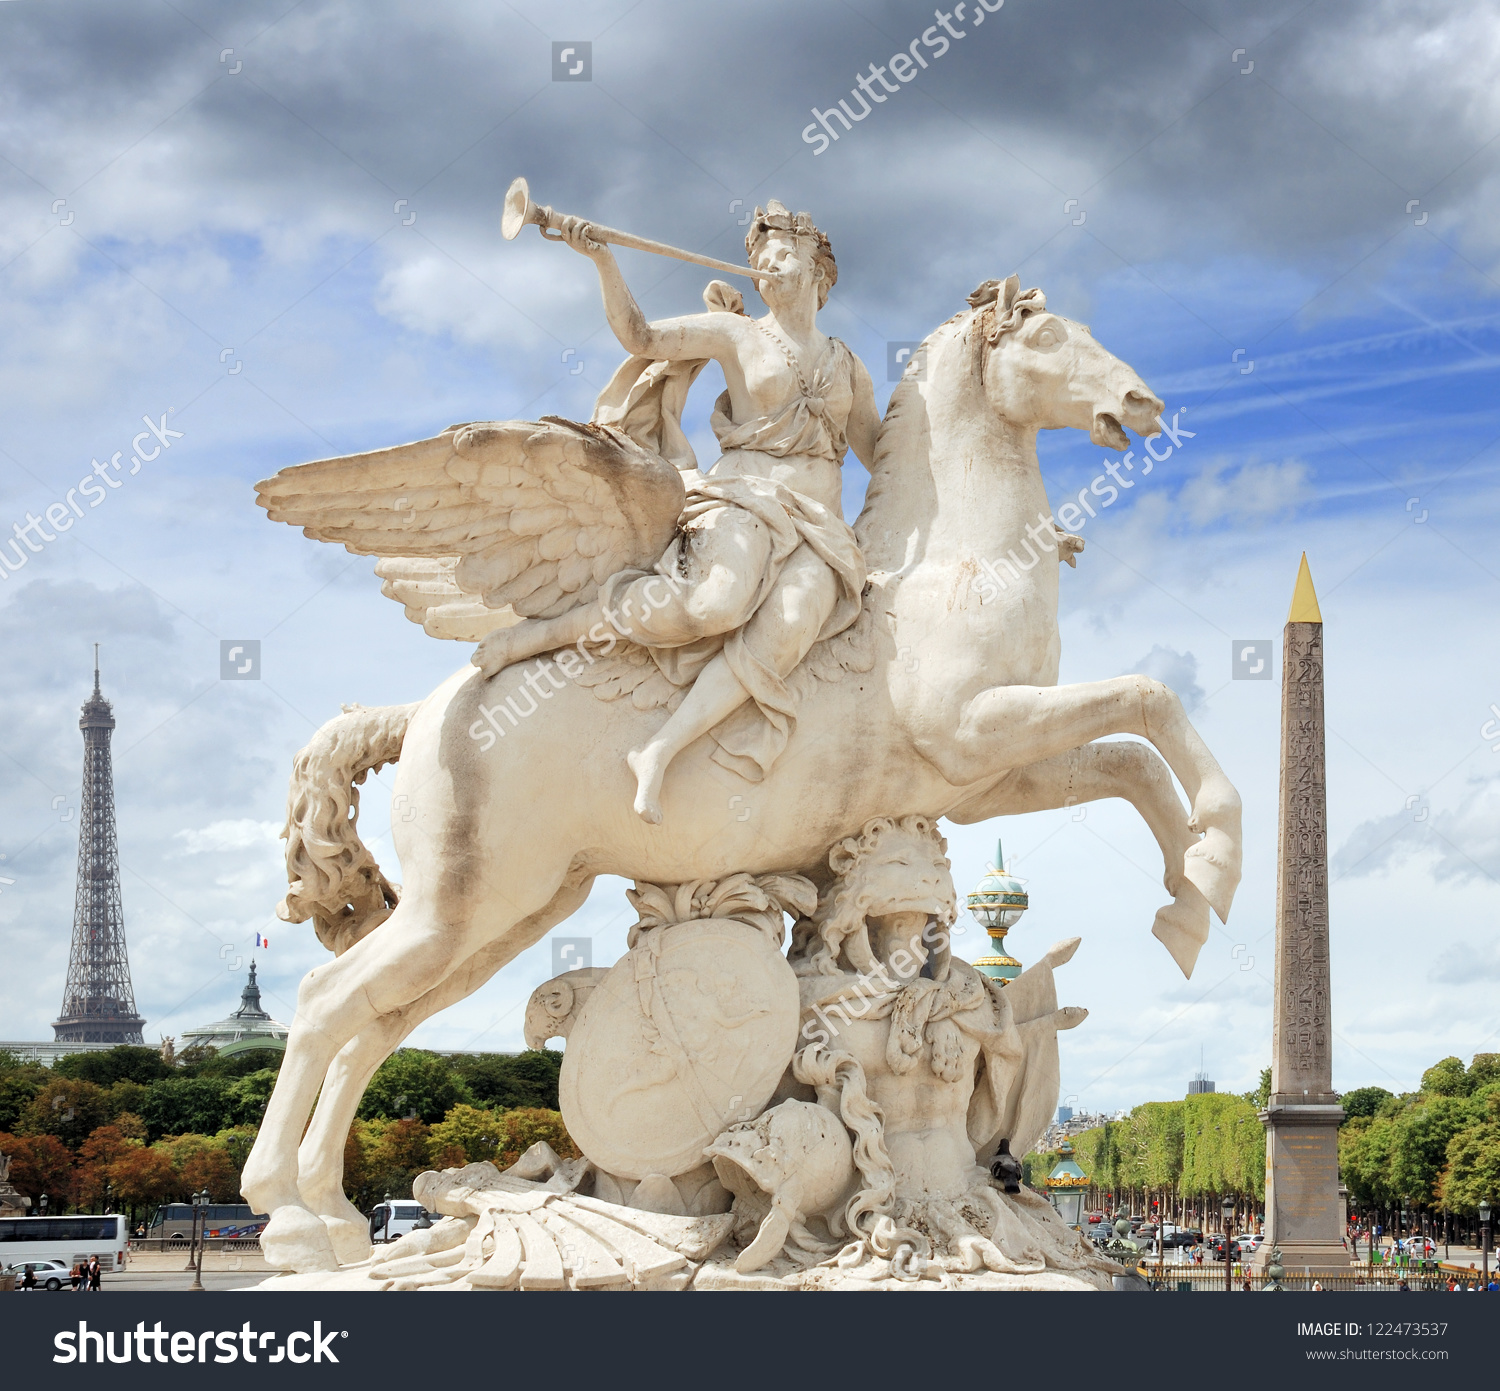 The Statue Of Renommee, Or The Fame Of The King, Riding The Horse.